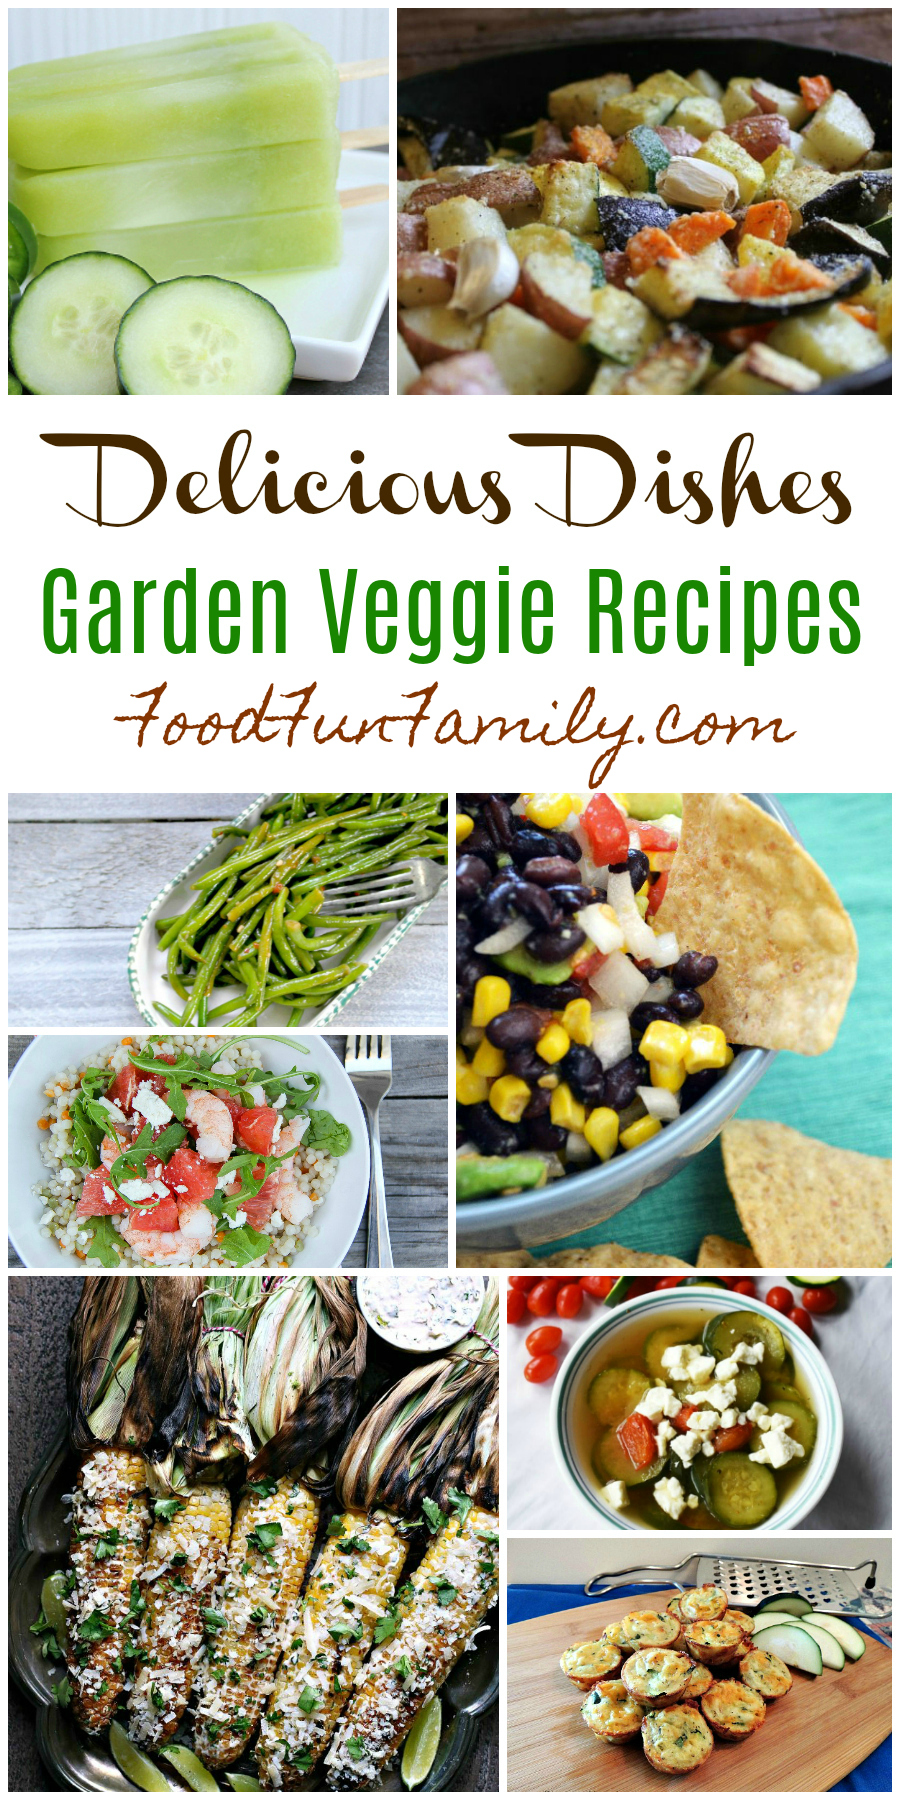 Garden Veggie Recipes - a Delicious Dishes recipe collection